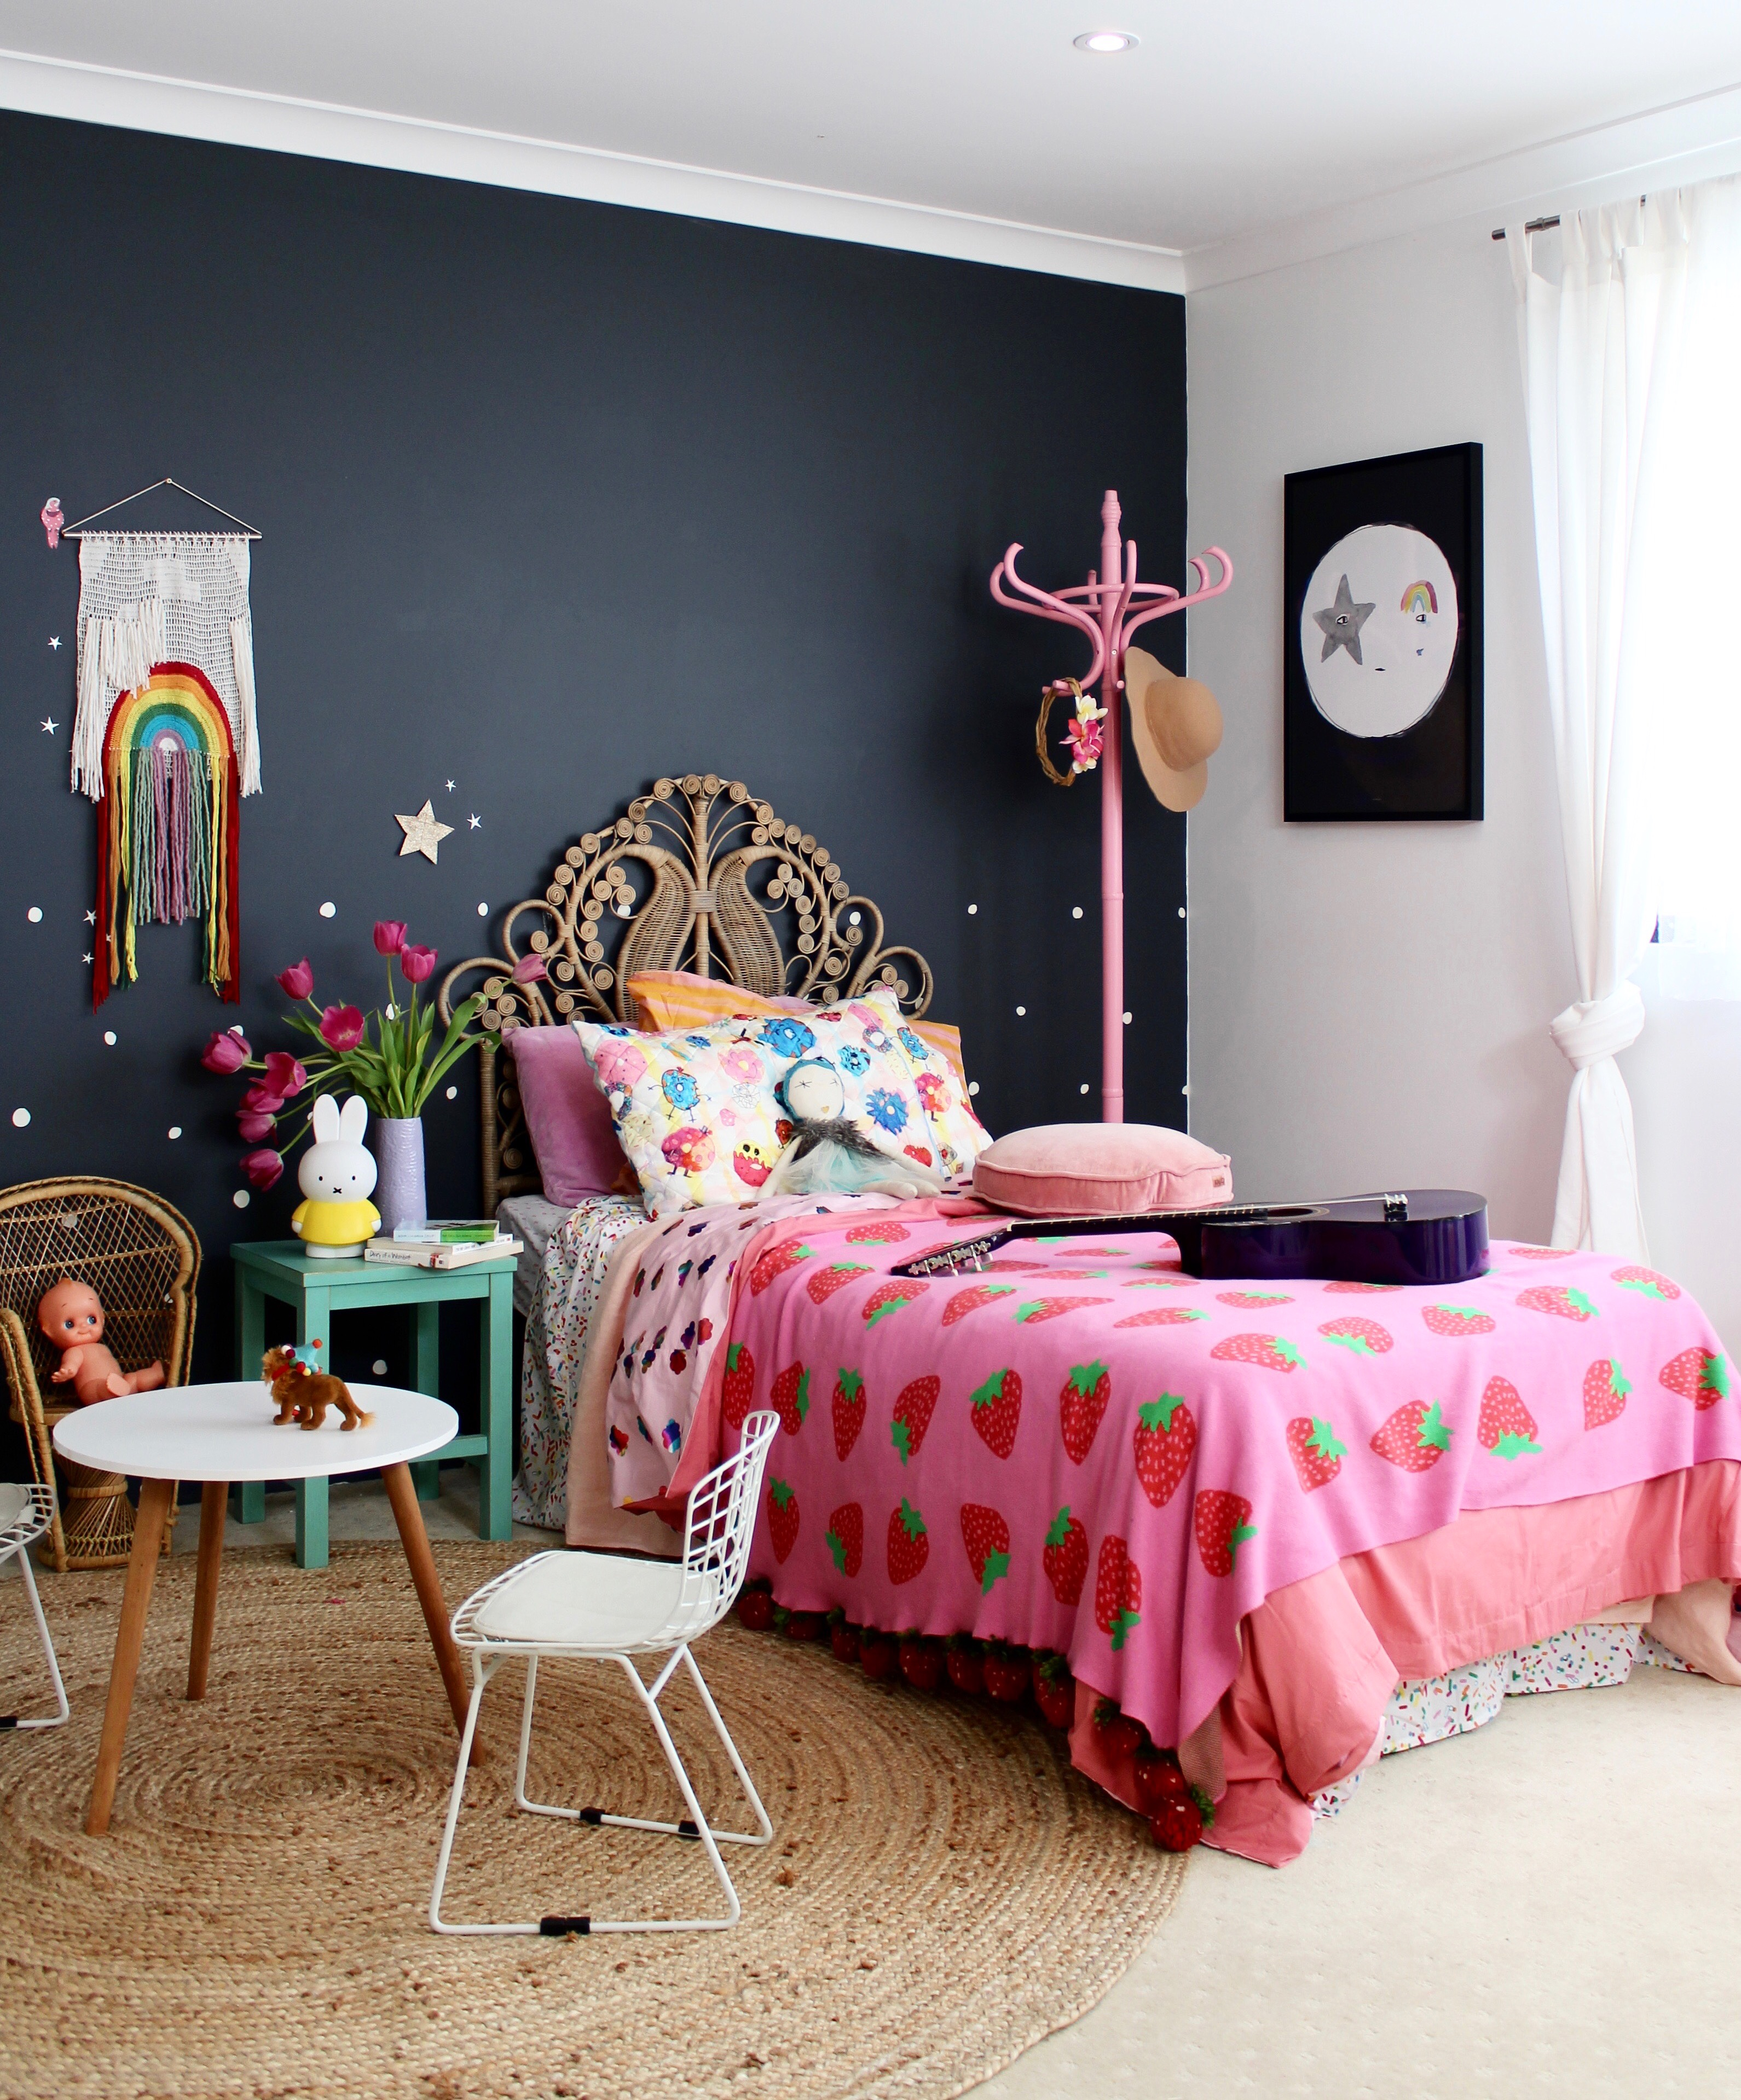 Mansion Bedrooms For Girls Cool Looking Bedrooms For Girls Brick Wallpaper Bedroom Bedroom Paint Ideas In Pakistan: Four Cheeky Monkeys